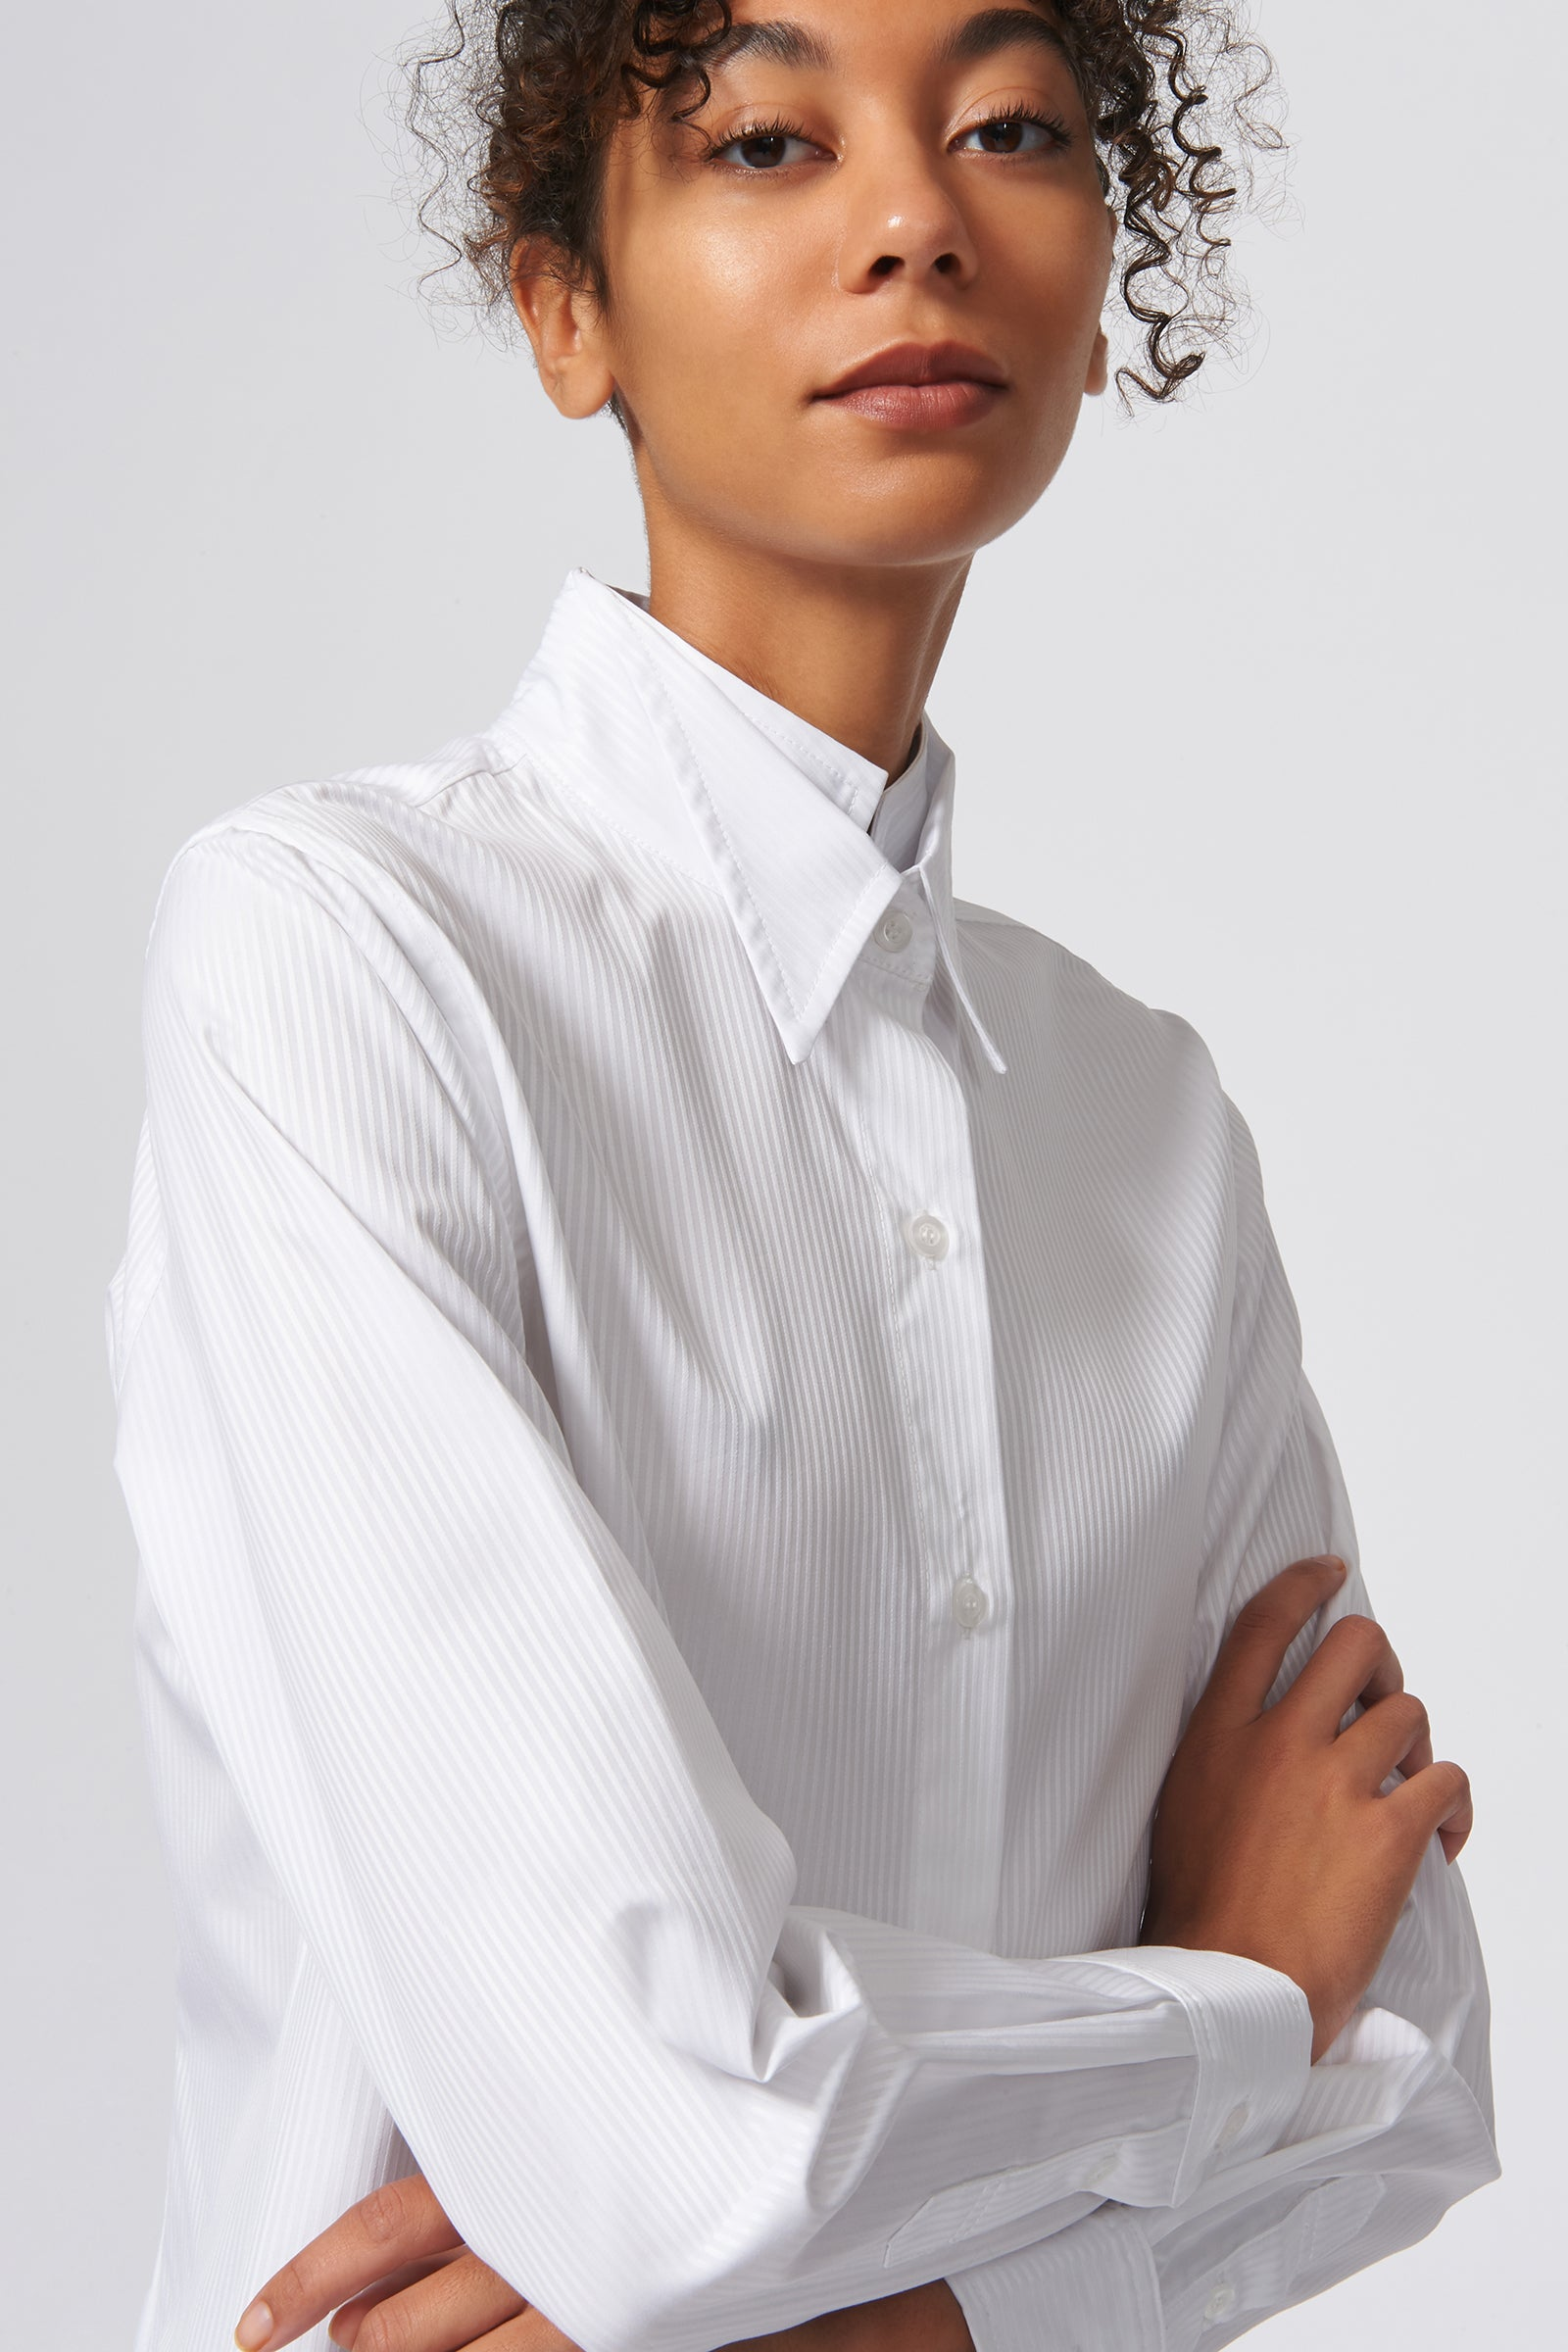 Kal Rieman Double Collar Shirt in White Satin Stripe on Model Close Up View